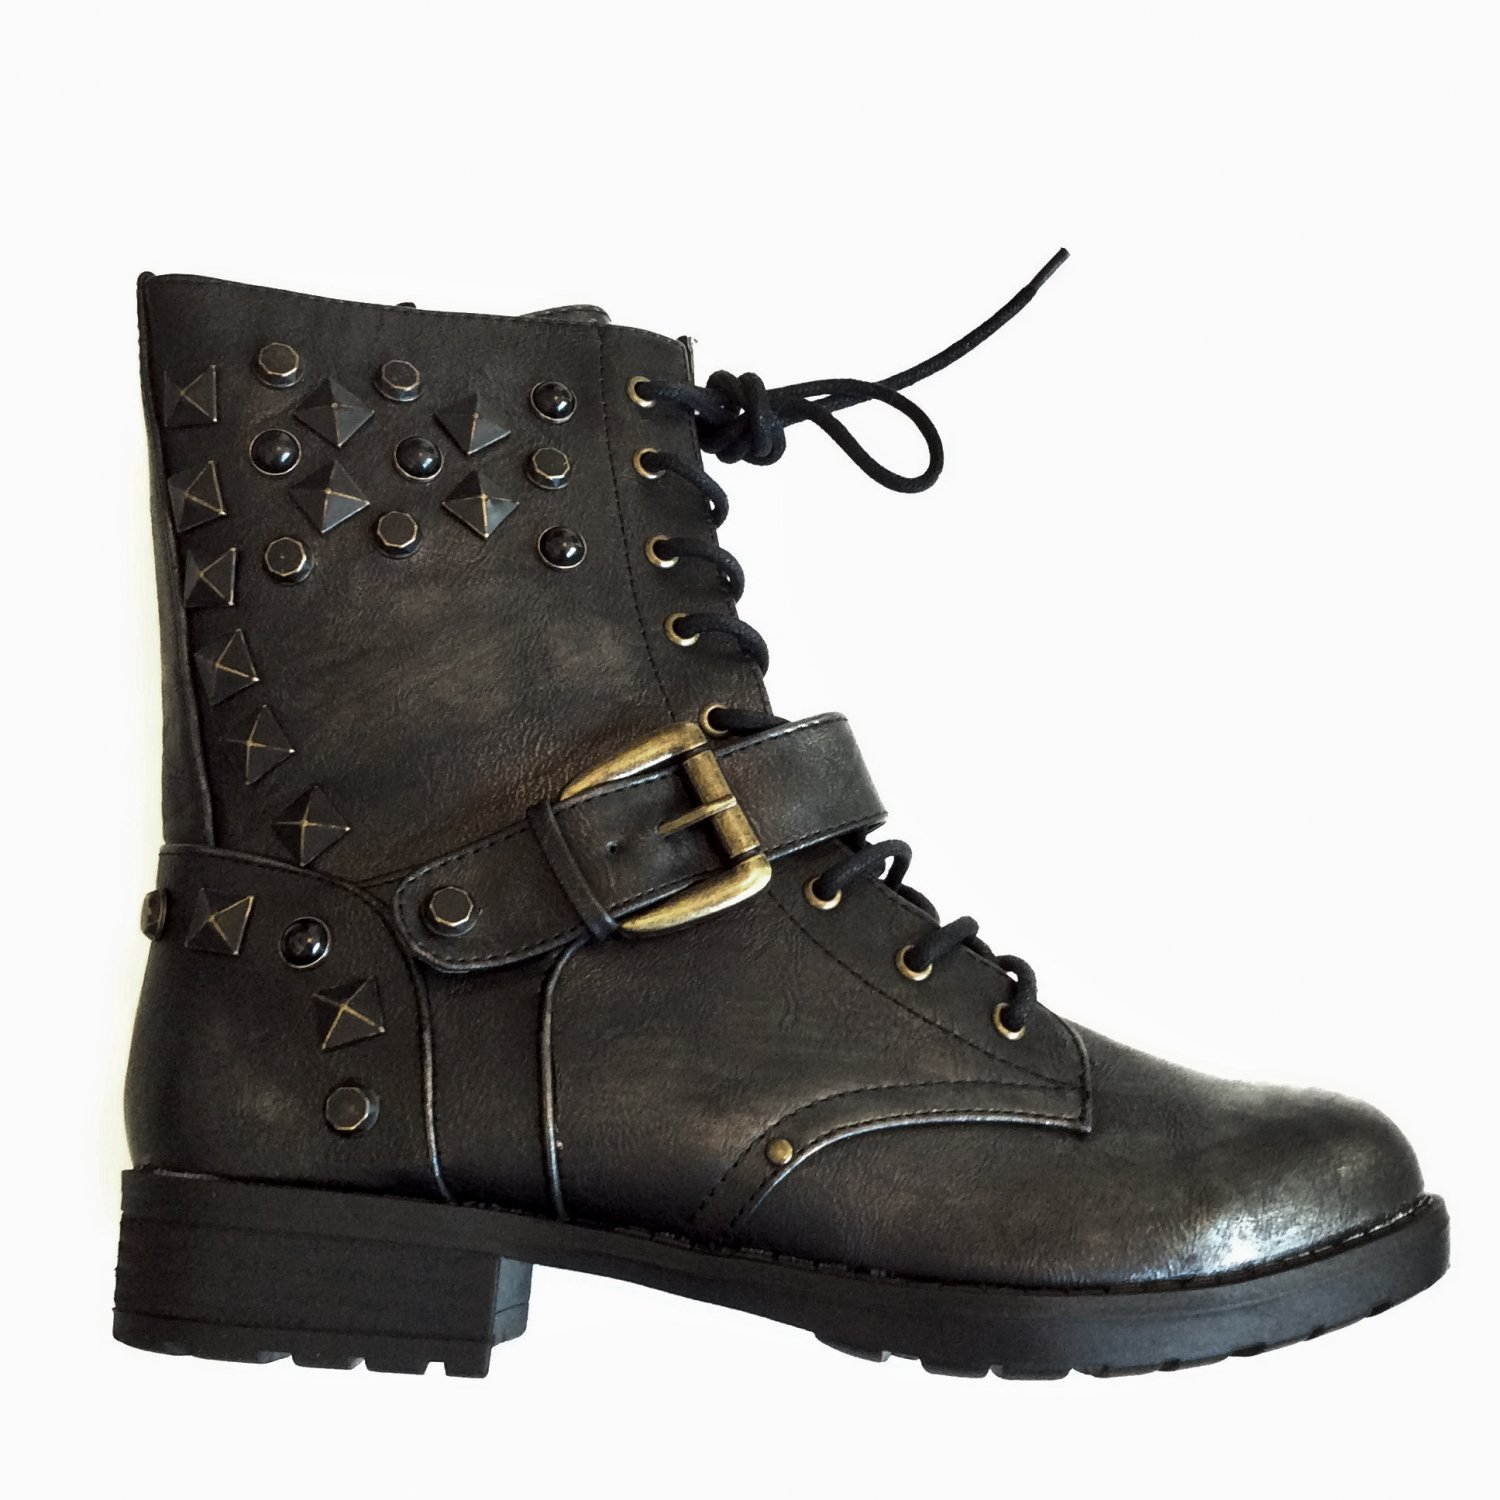 MIA Spikke Black Womens Studded Boots Metallic Black Size 8.5 M New Was $79 now $40